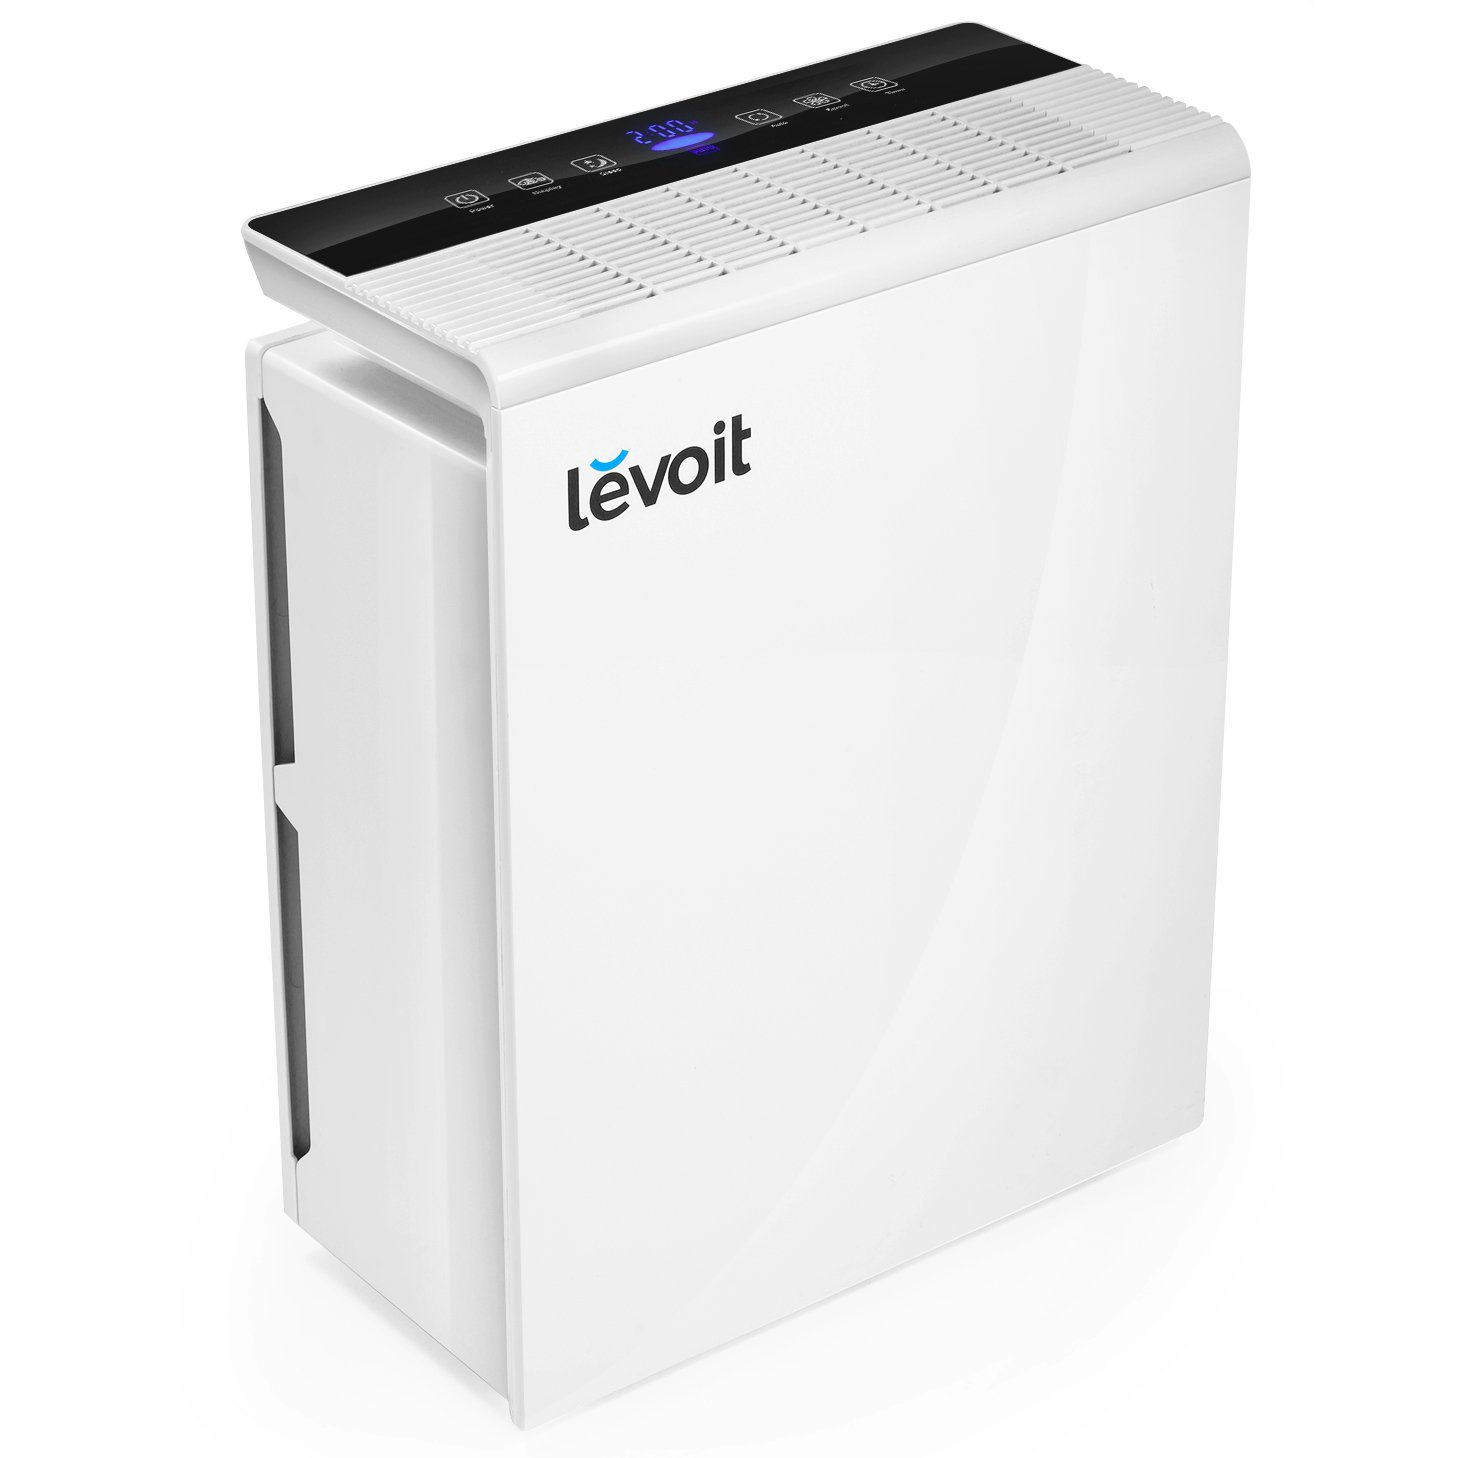 Levoit LV-PUR131 Air Purifier with True HEPA Filter, Odor Allergies Eliminator, Air Cleaner for Large Room, Dust, Smoke, Mold, Pets, Smokers, Home, Auto Air Quality Monitor, 322 sq. ft, US-120V